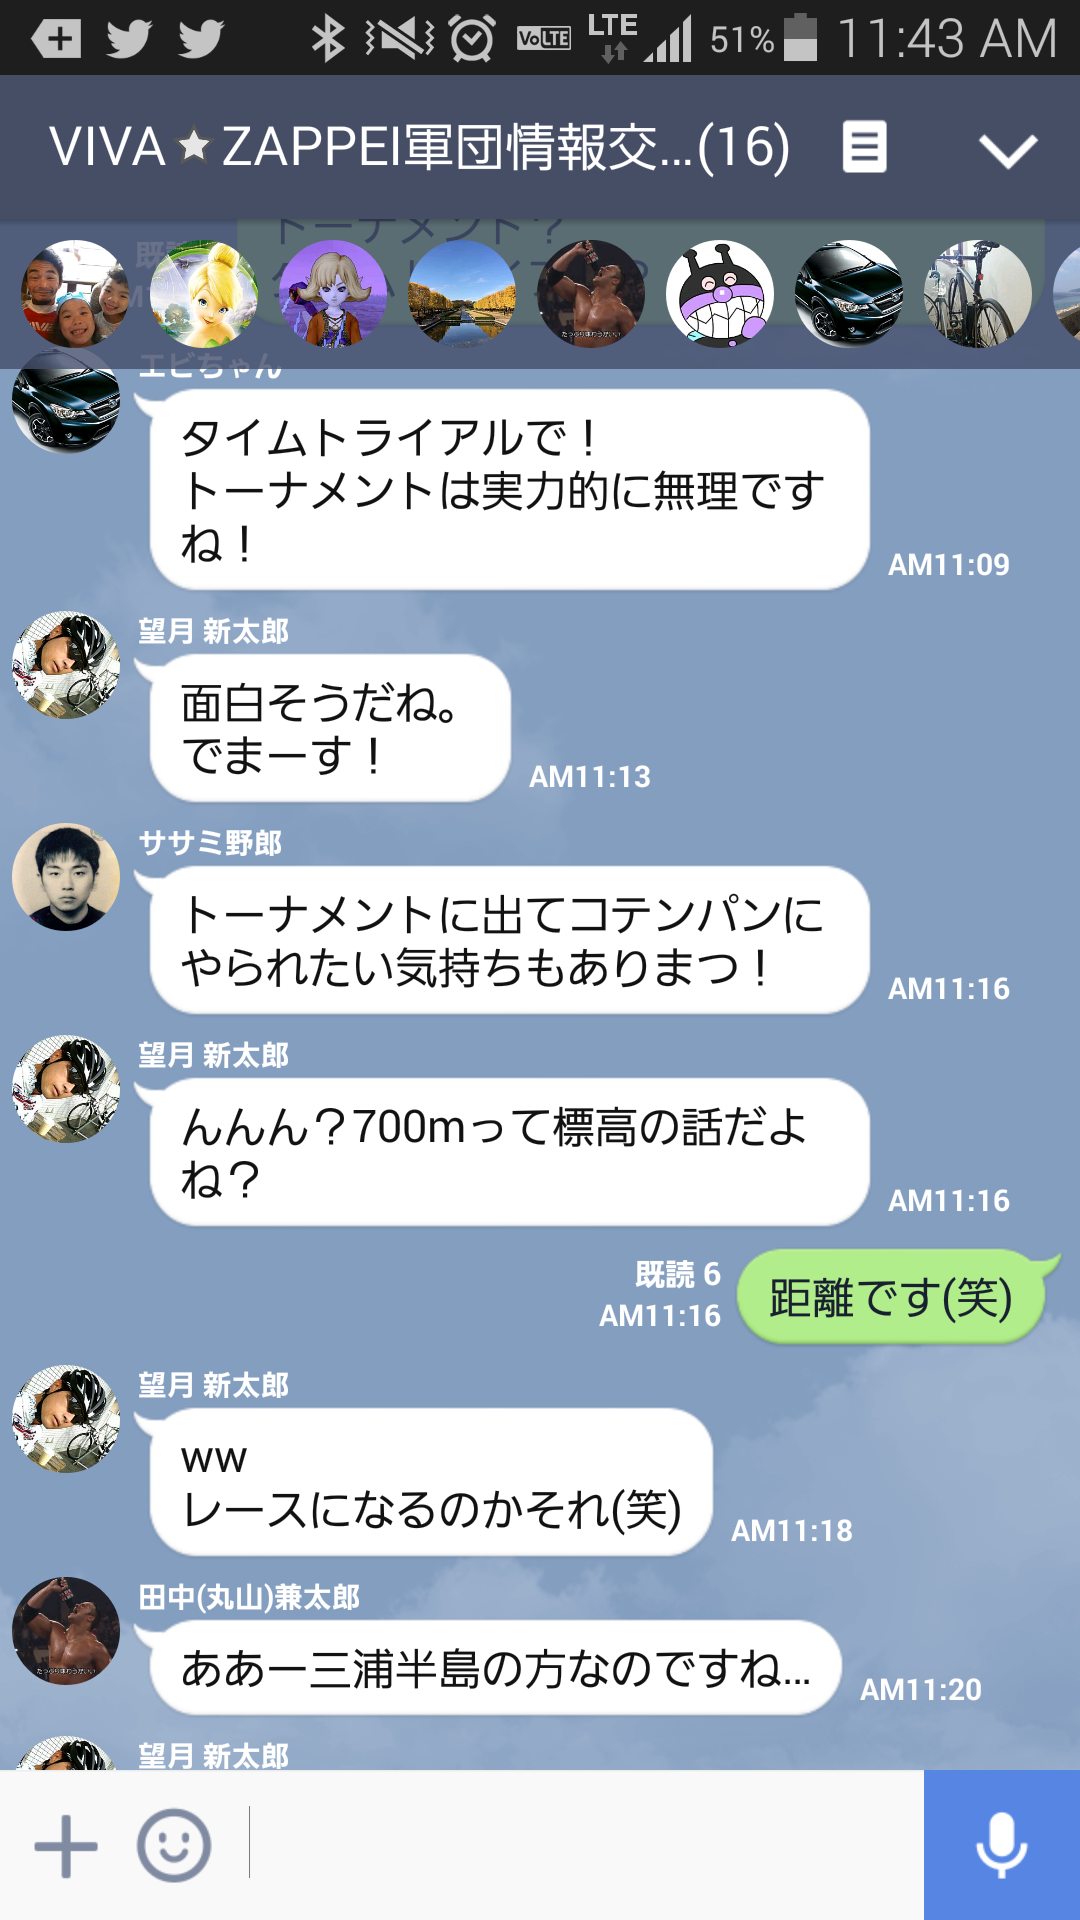 Screenshot_2015-10-03-11-43-03.png